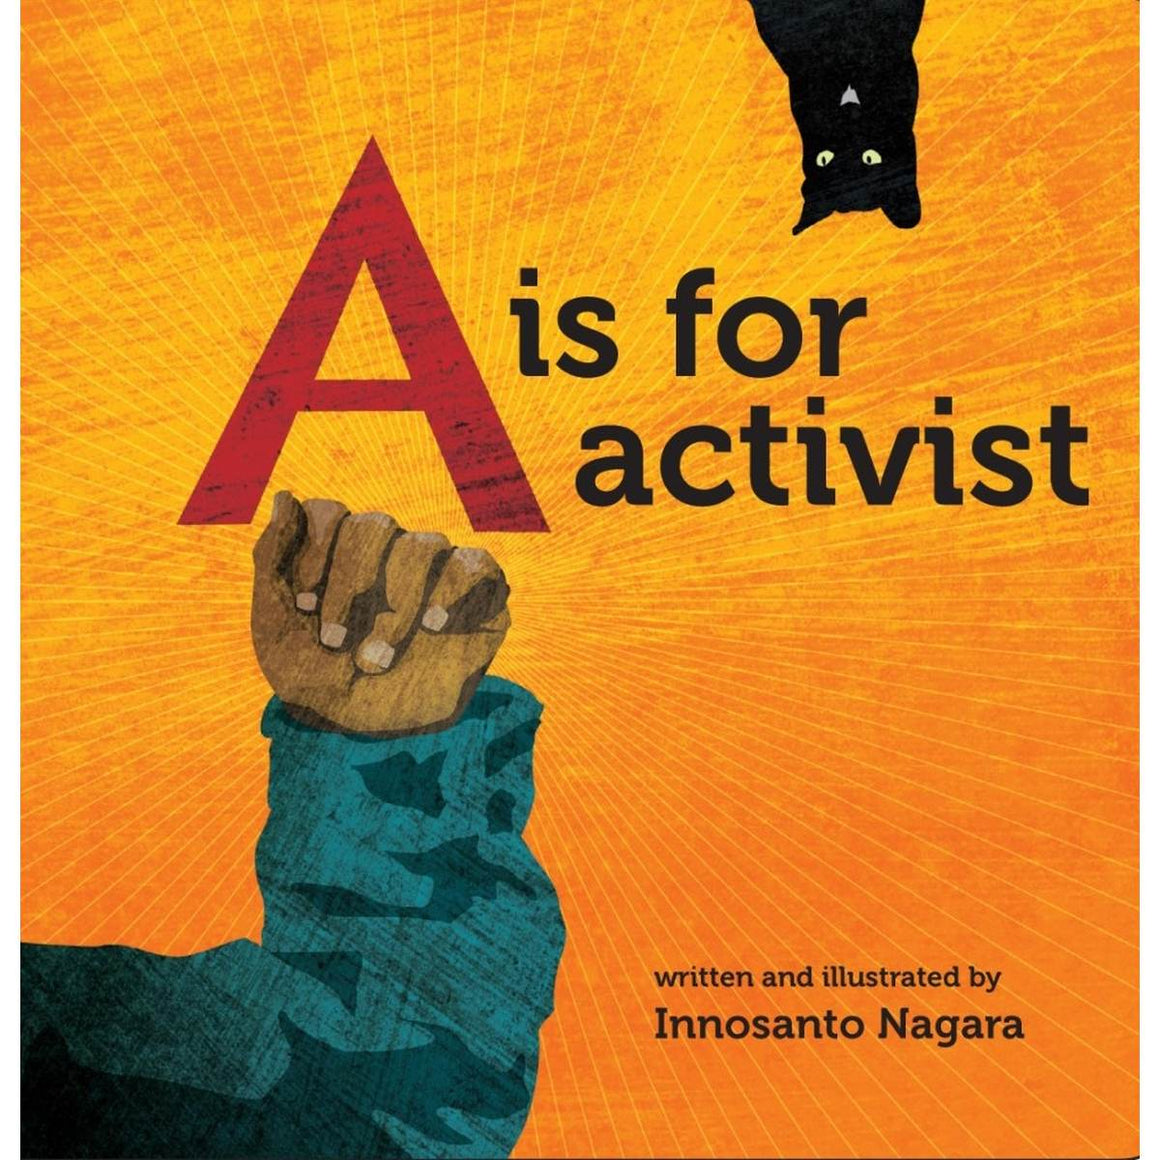 A book cover with a cover illustrations showing a black cat and a hand held up in the power pose on a bright orange and yellow background.